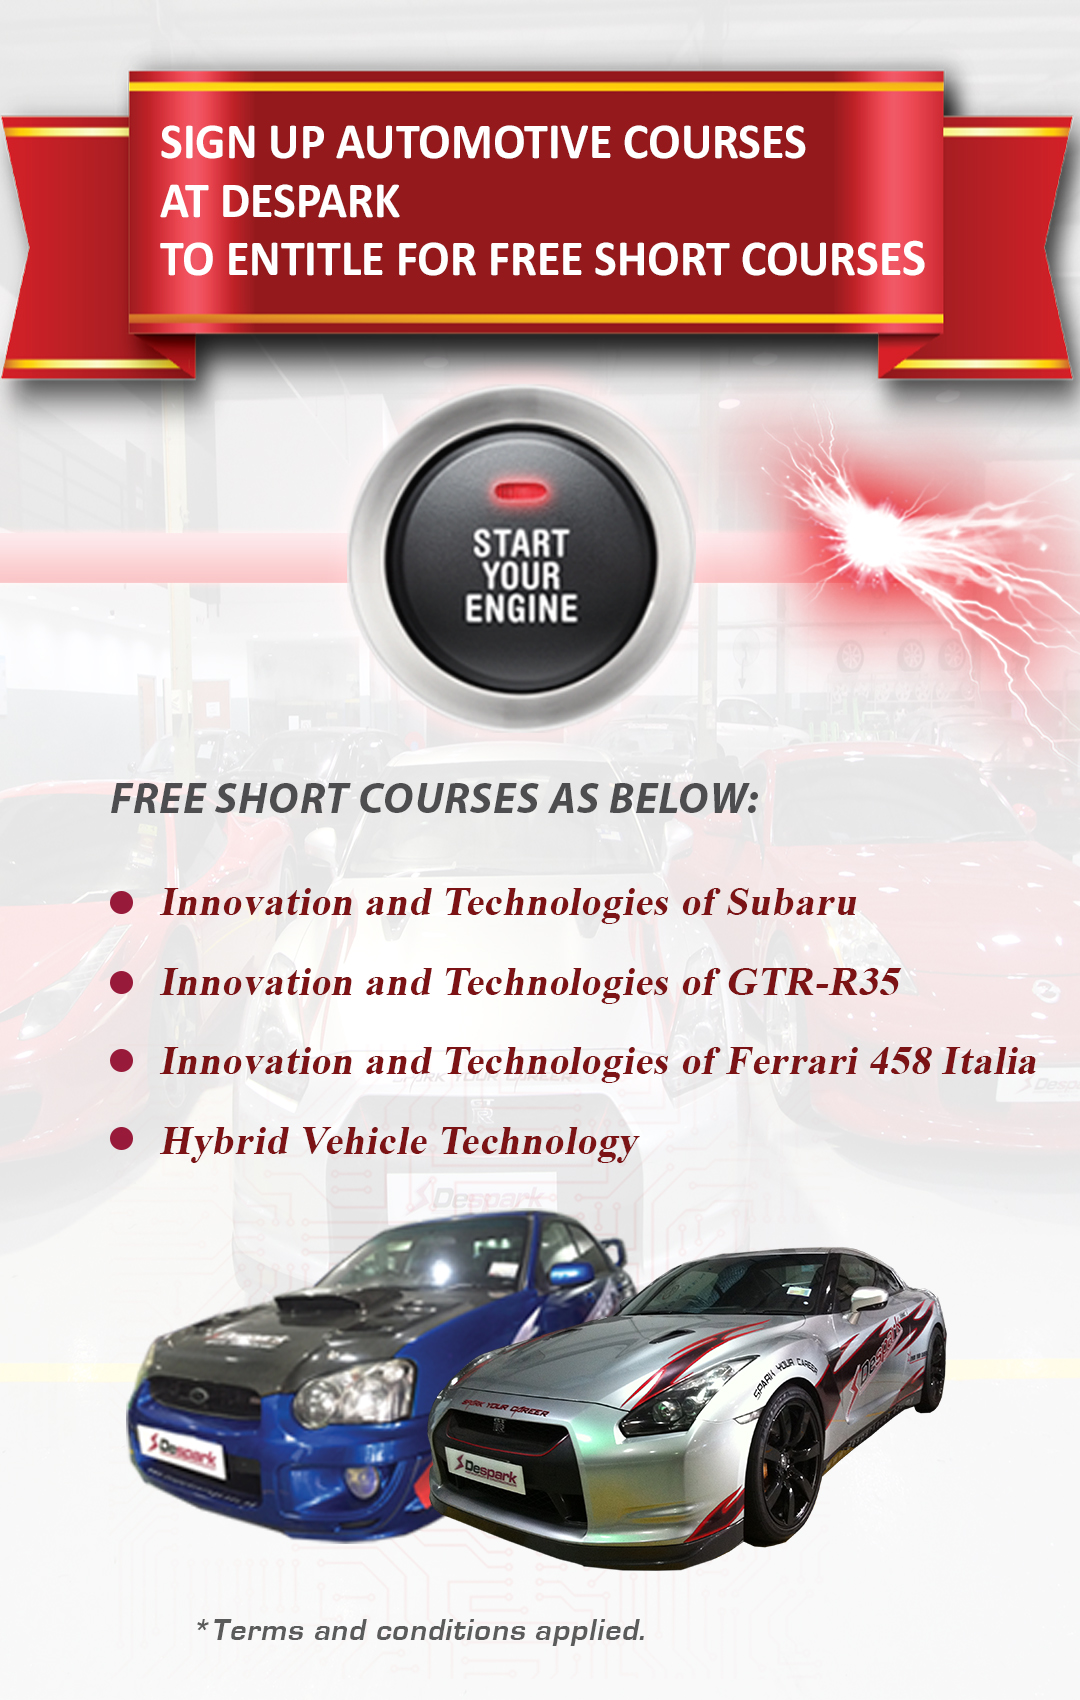 FREE SHORT COURSES